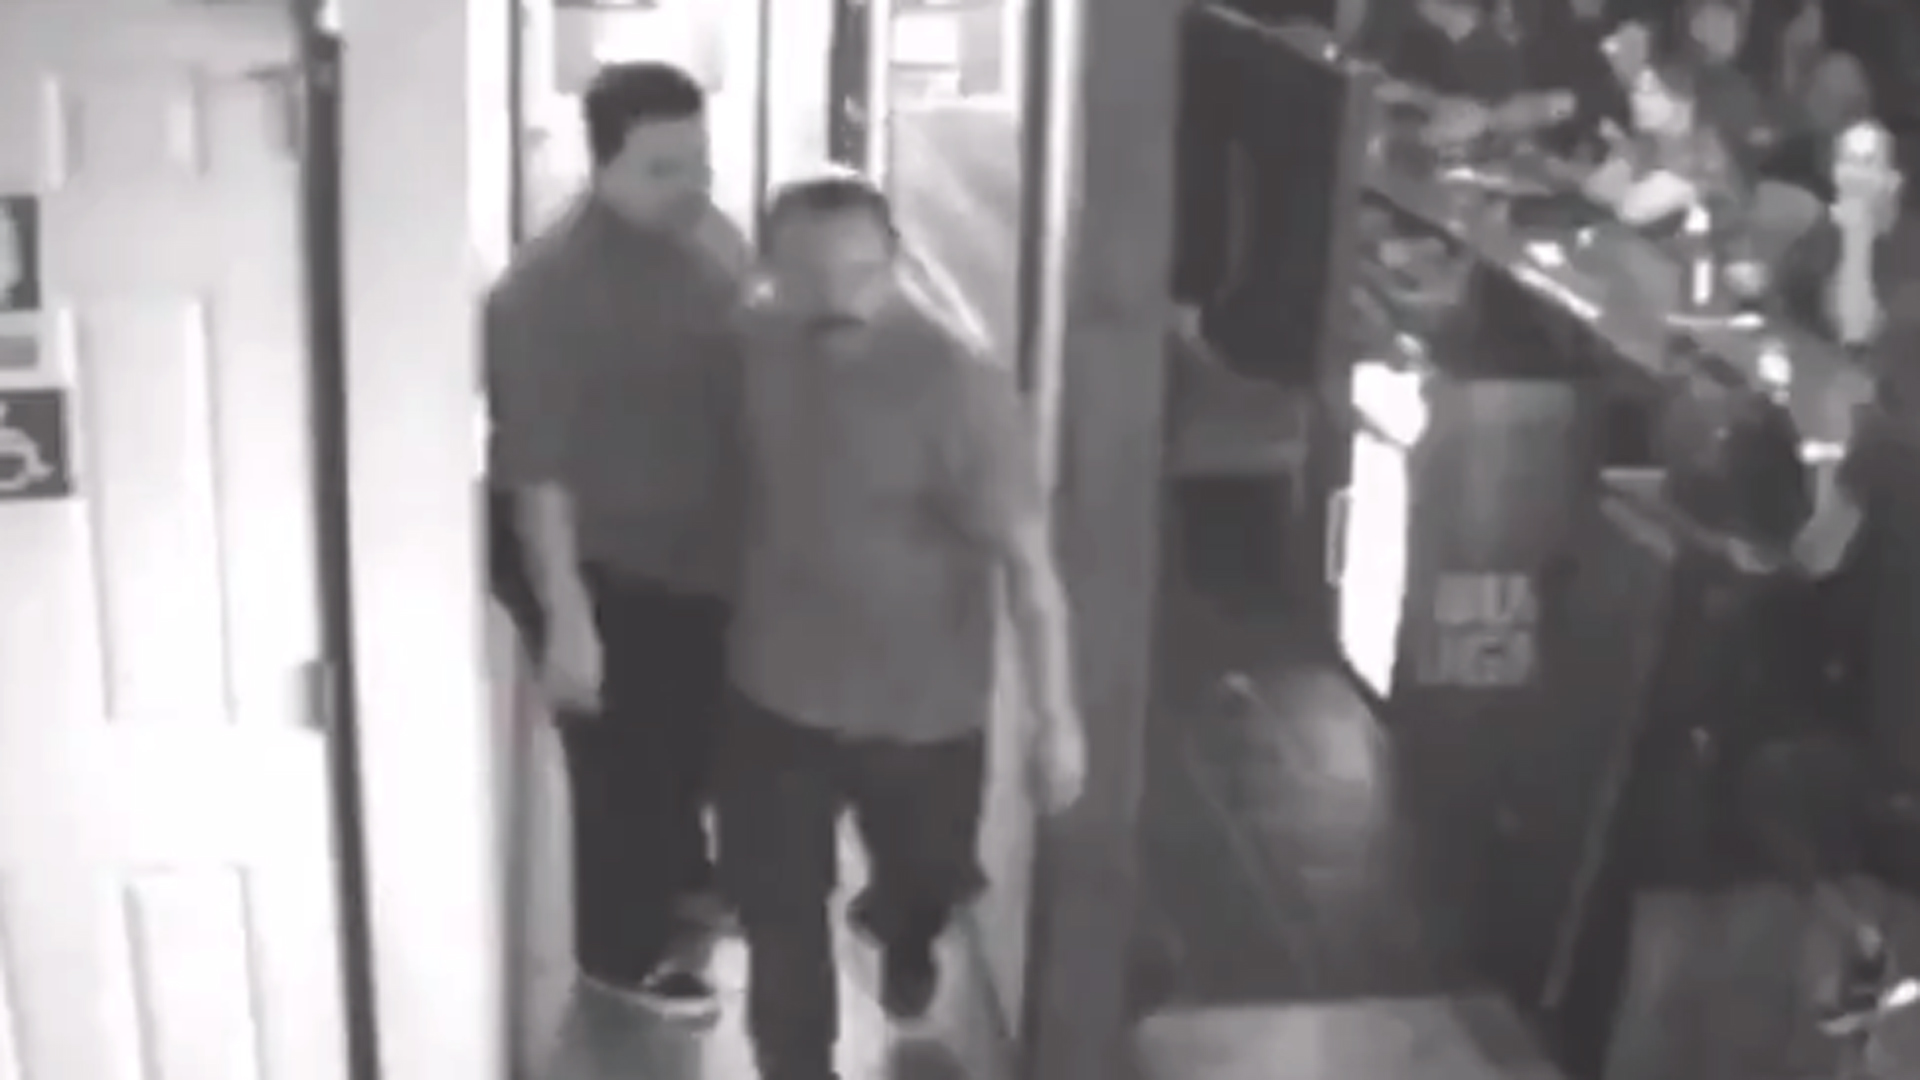 The Covina Police Department was seeking the man pictured in this surveillance camera image, center, who investigators say attacked another man with a beer mug at a Covina bar on Aug. 17, 2018, fracturing the victim's skull.